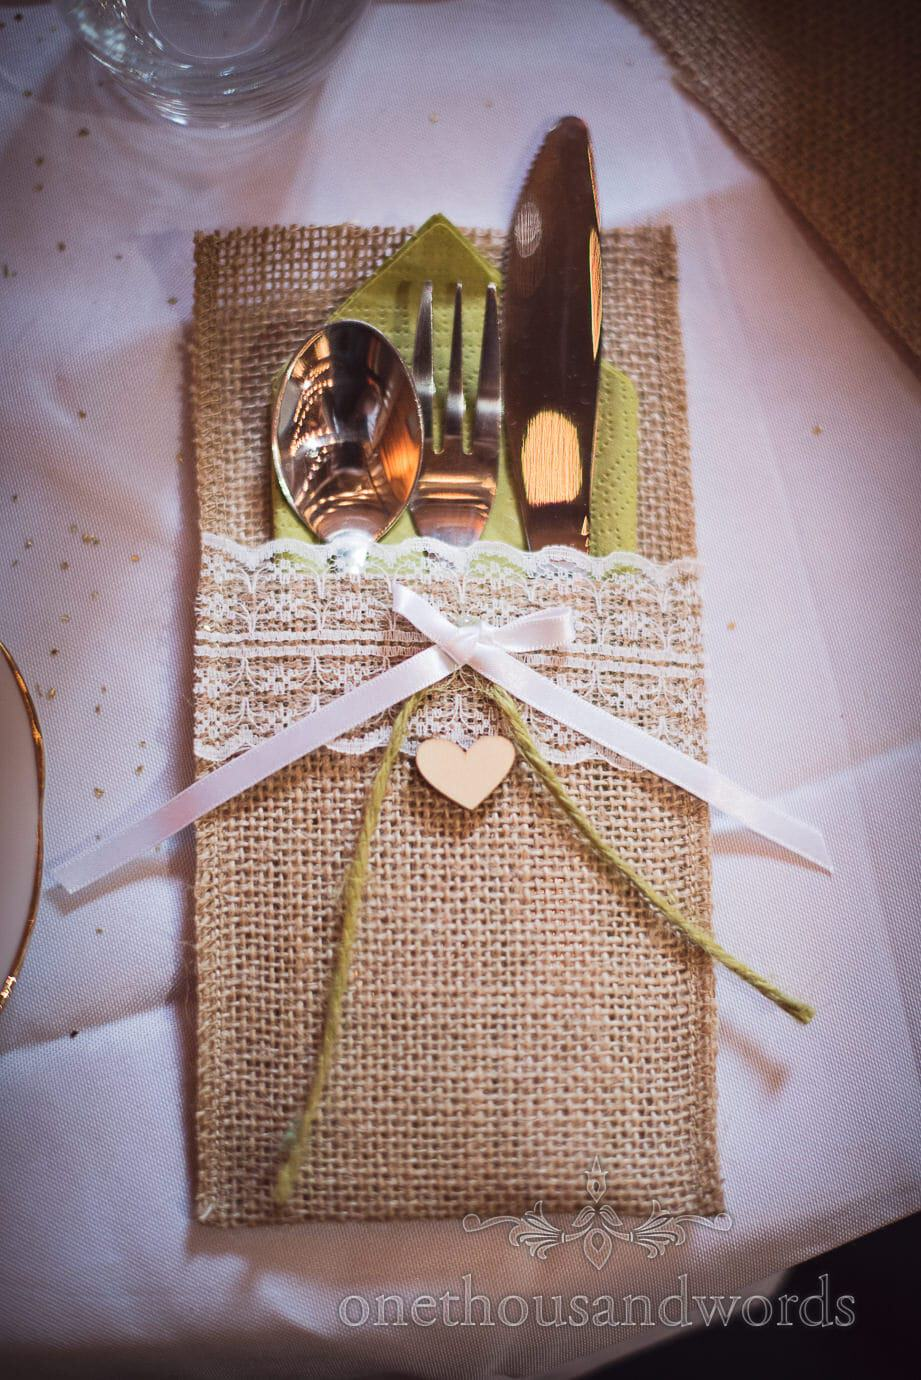 Rustic wedding cutlery place setting with hessian, lace, ribbon and golden sprinkles